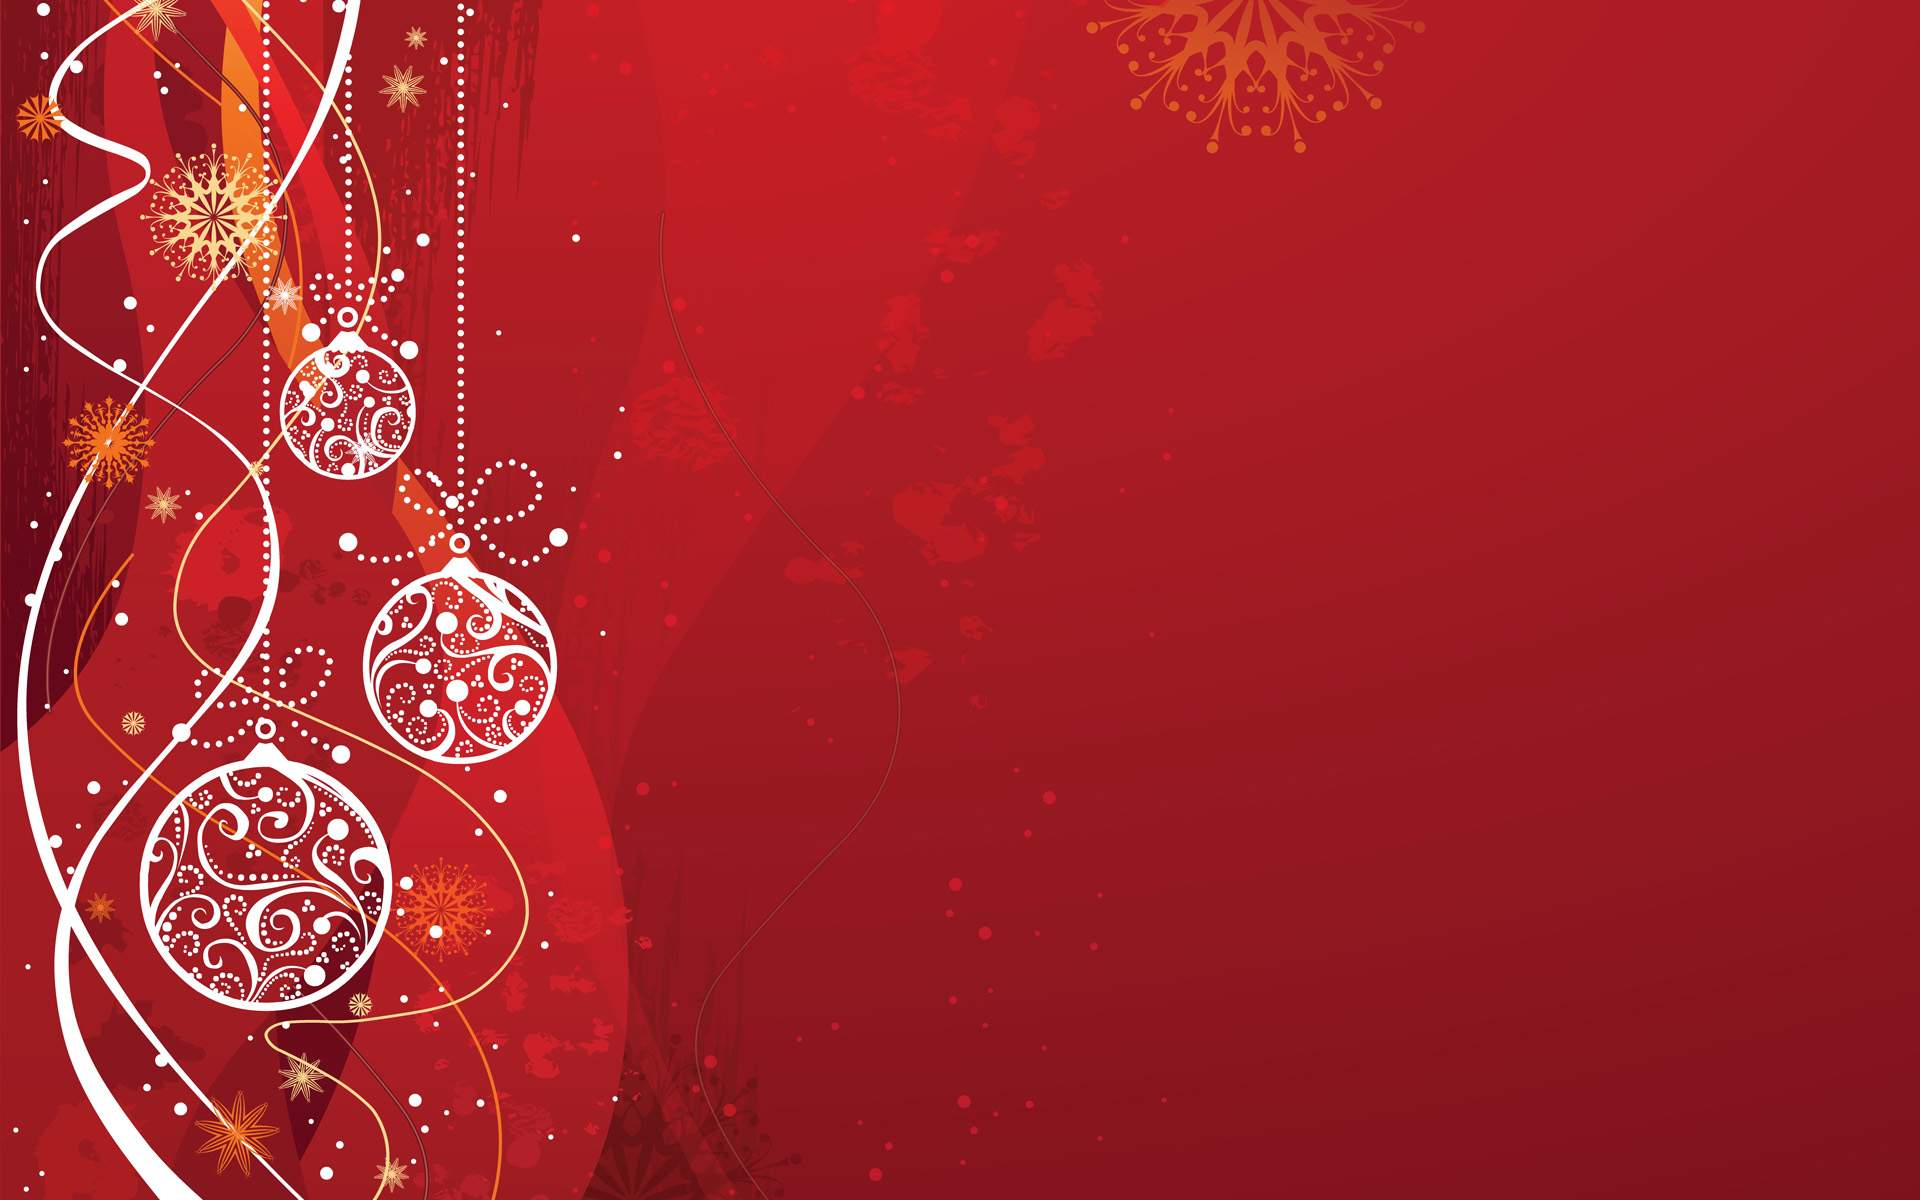 Backgrounds-For-Christmas-001